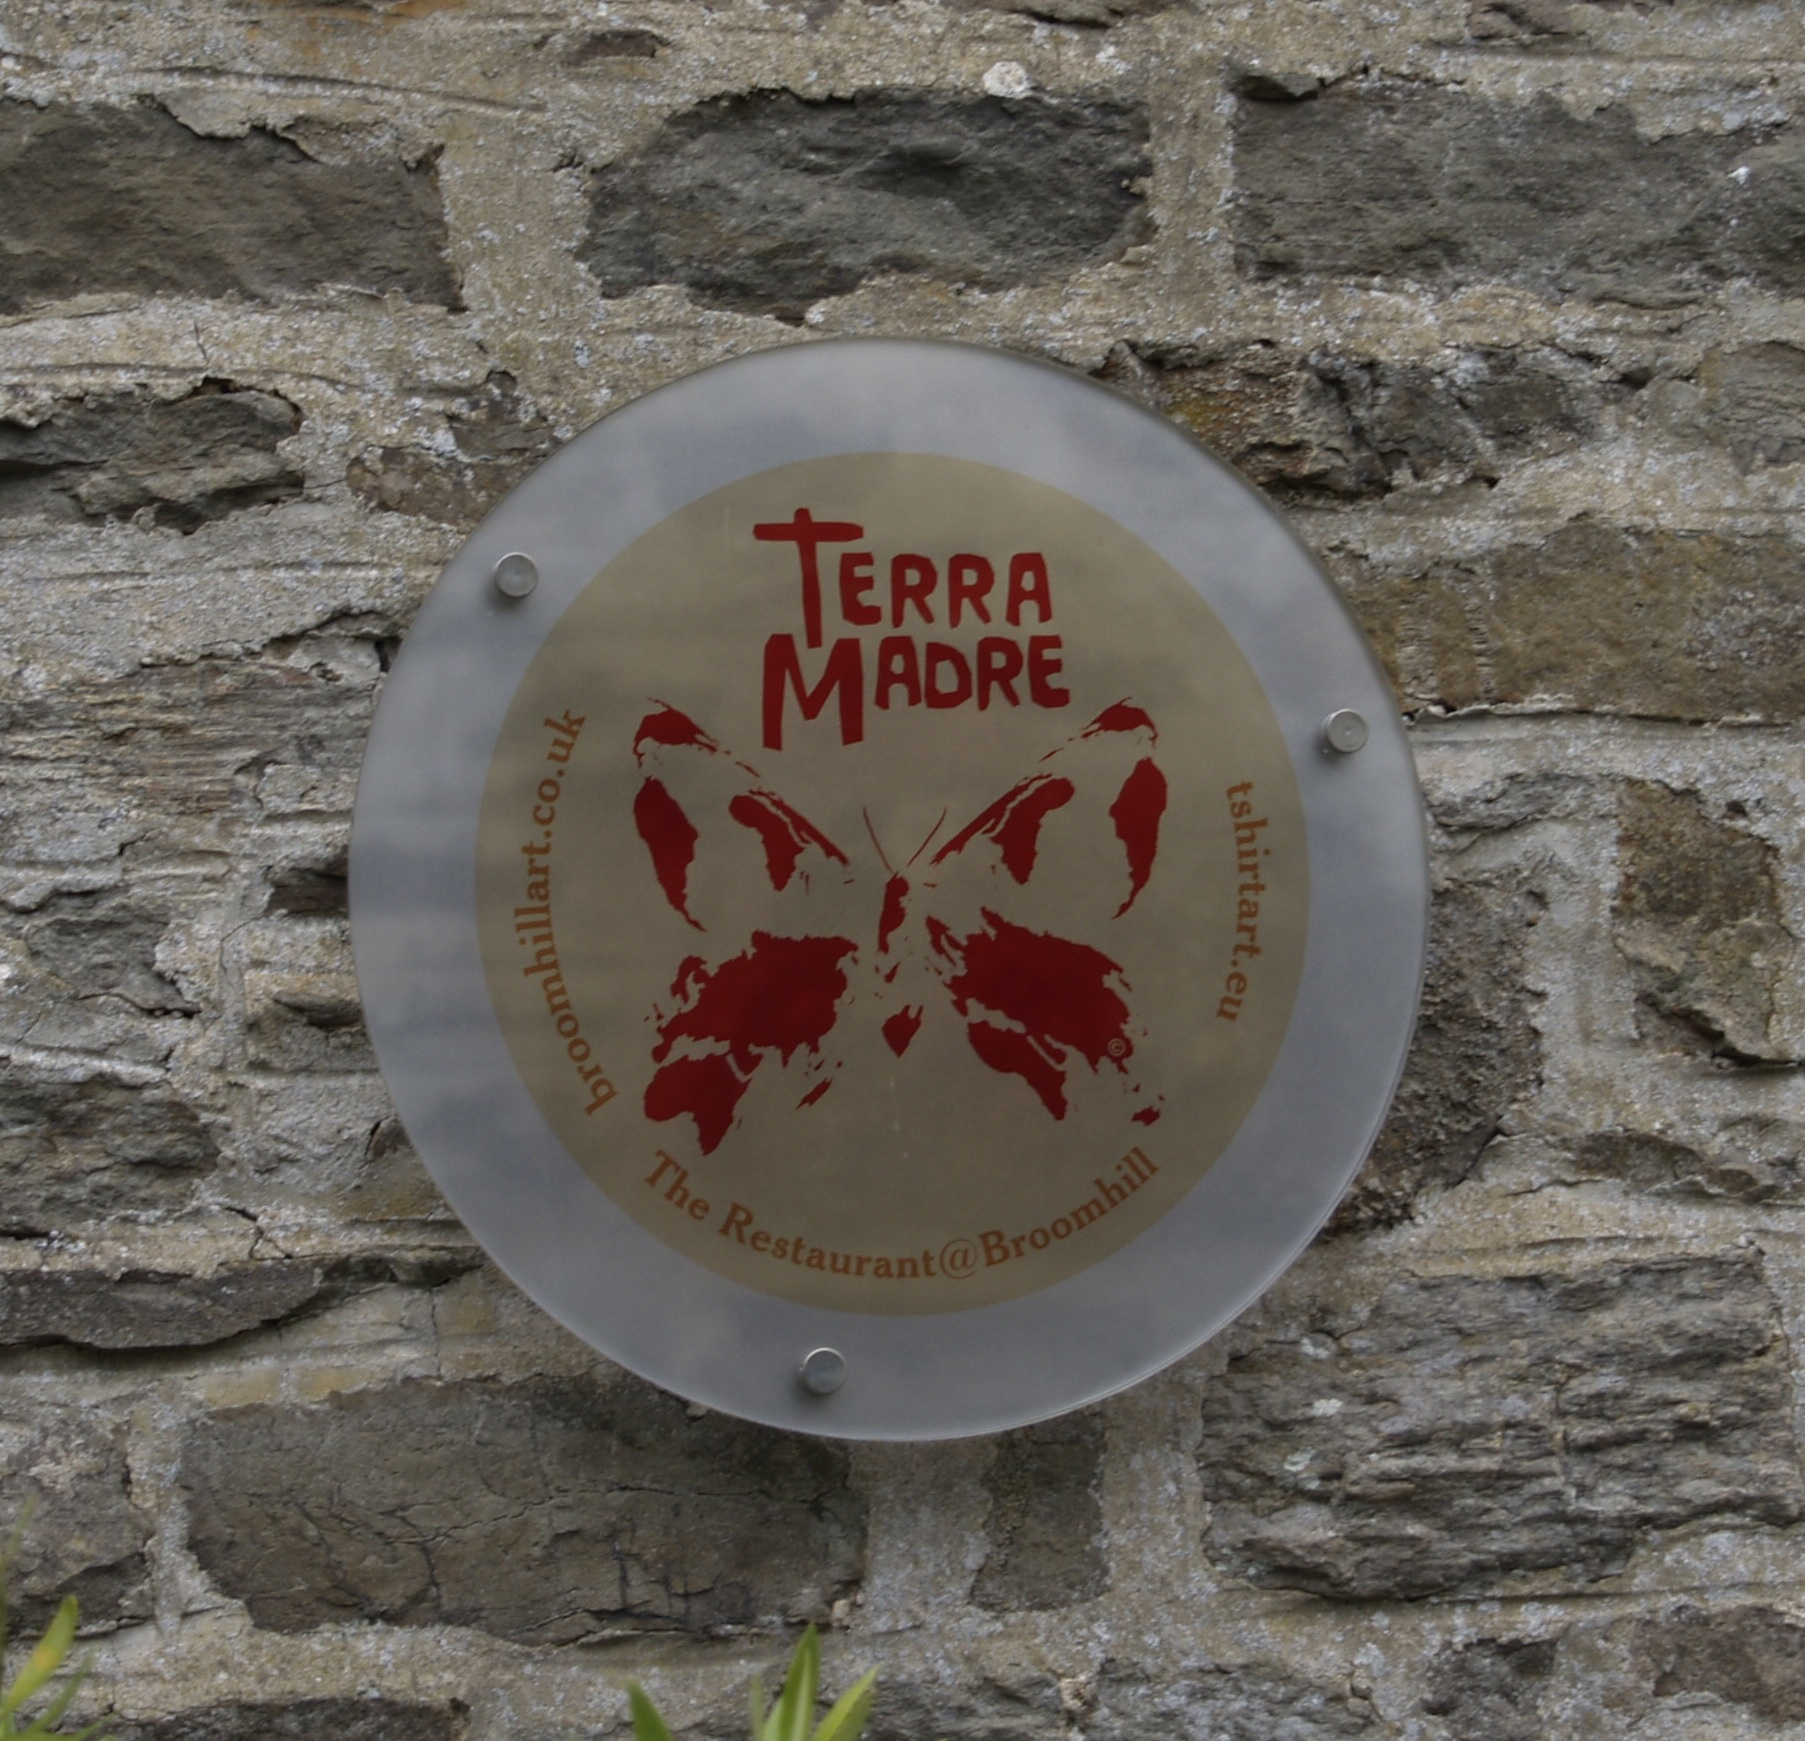 Reserve a table at Terra Madre at Broomhill Art Hotel